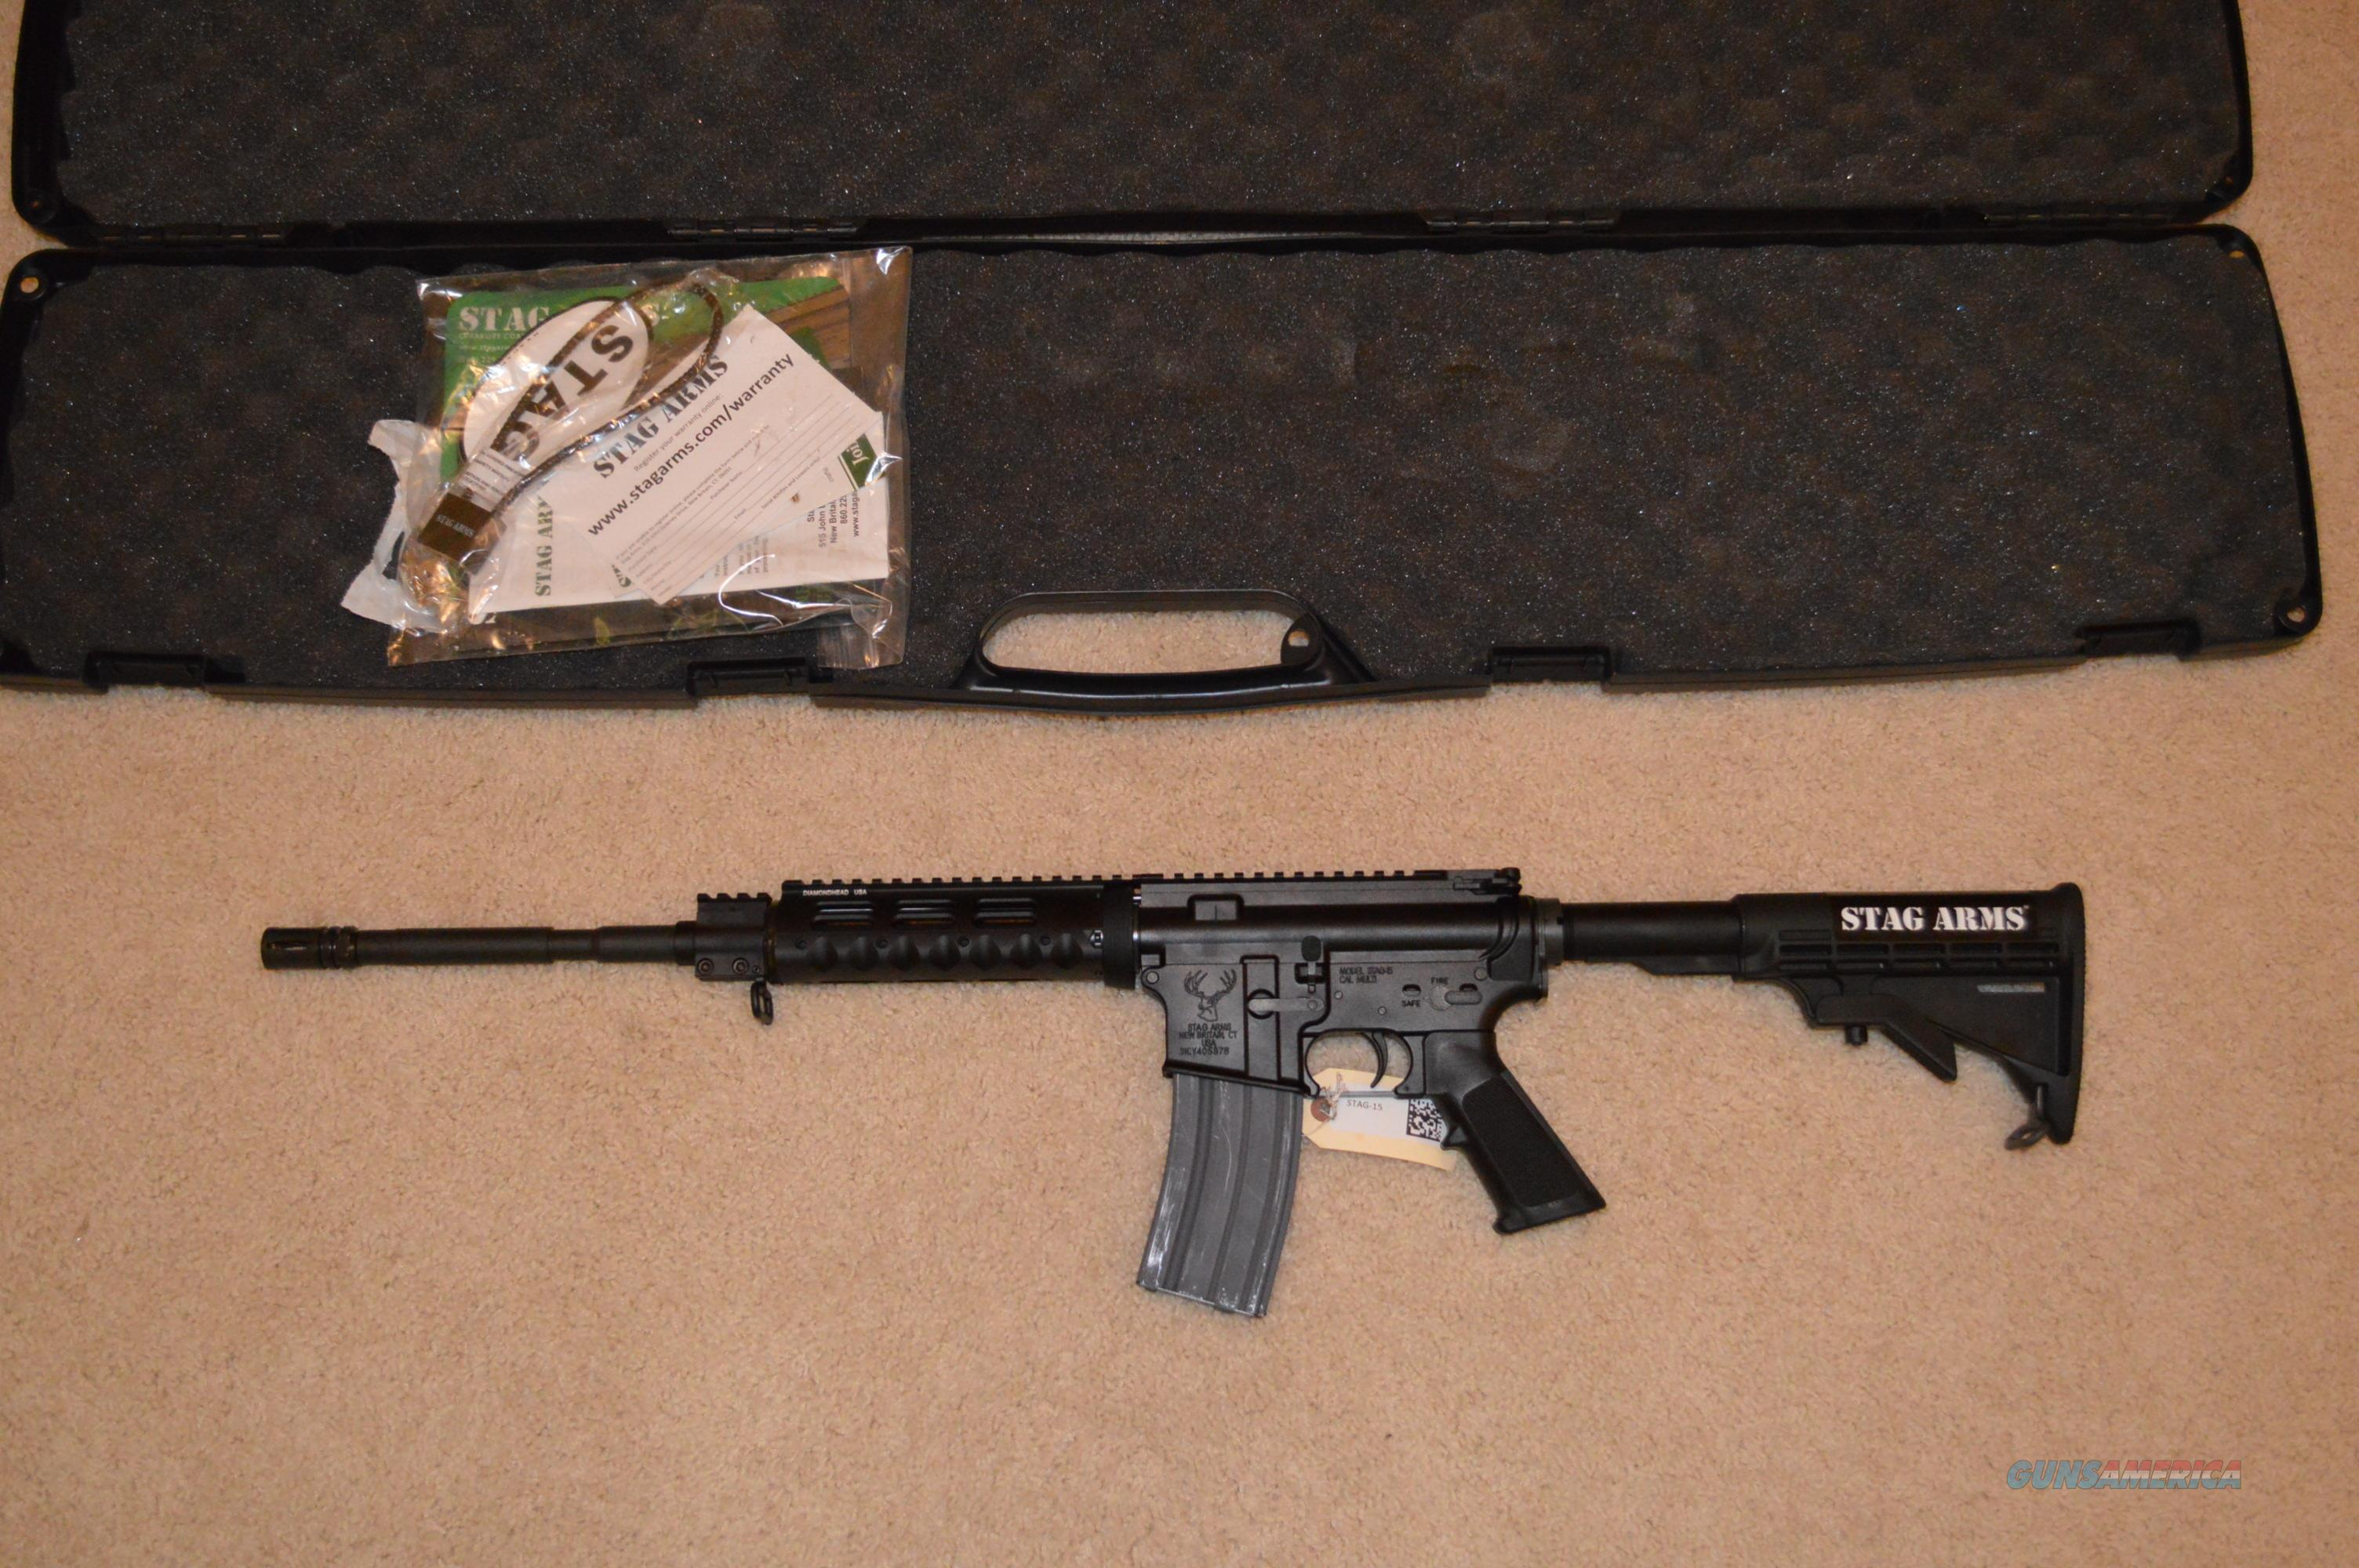 Black Friday Sale! Stag Arms Model 3 AR-15 SA3 + Extras!  Guns > Rifles > Stag Arms > Complete Rifles